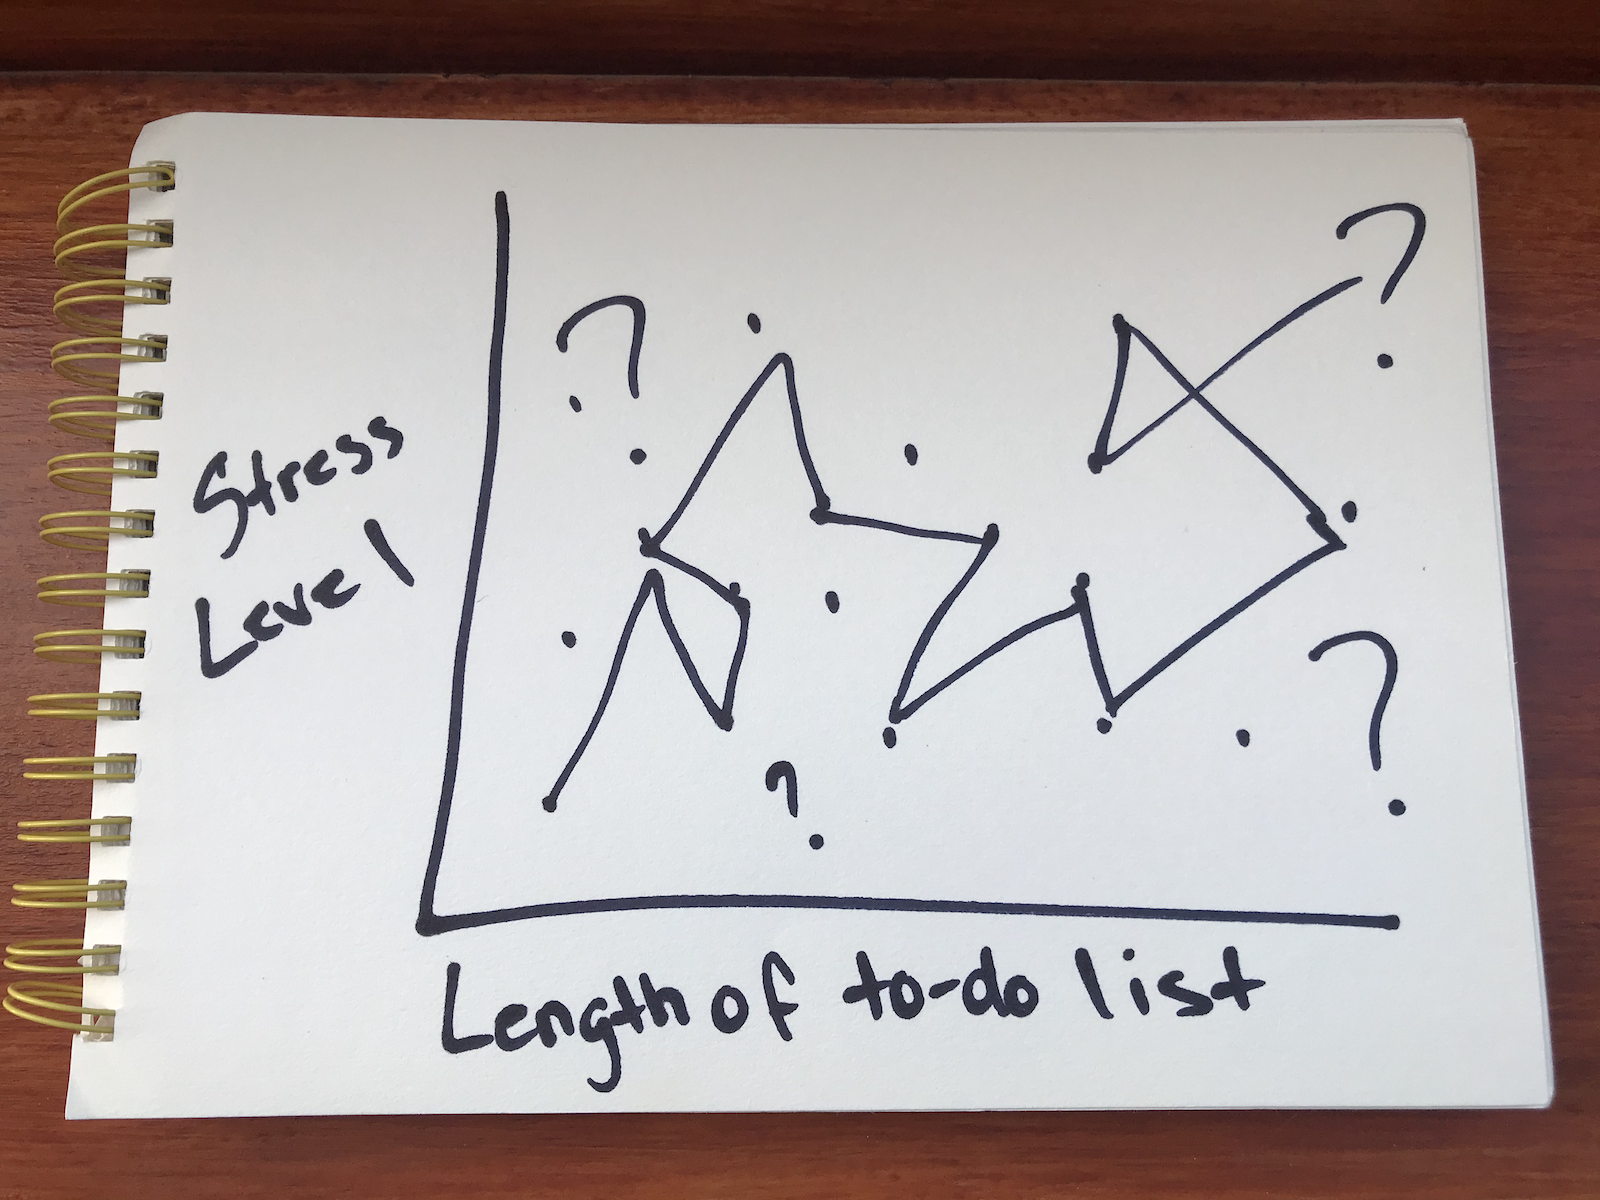 Stress Levels vs To-do List